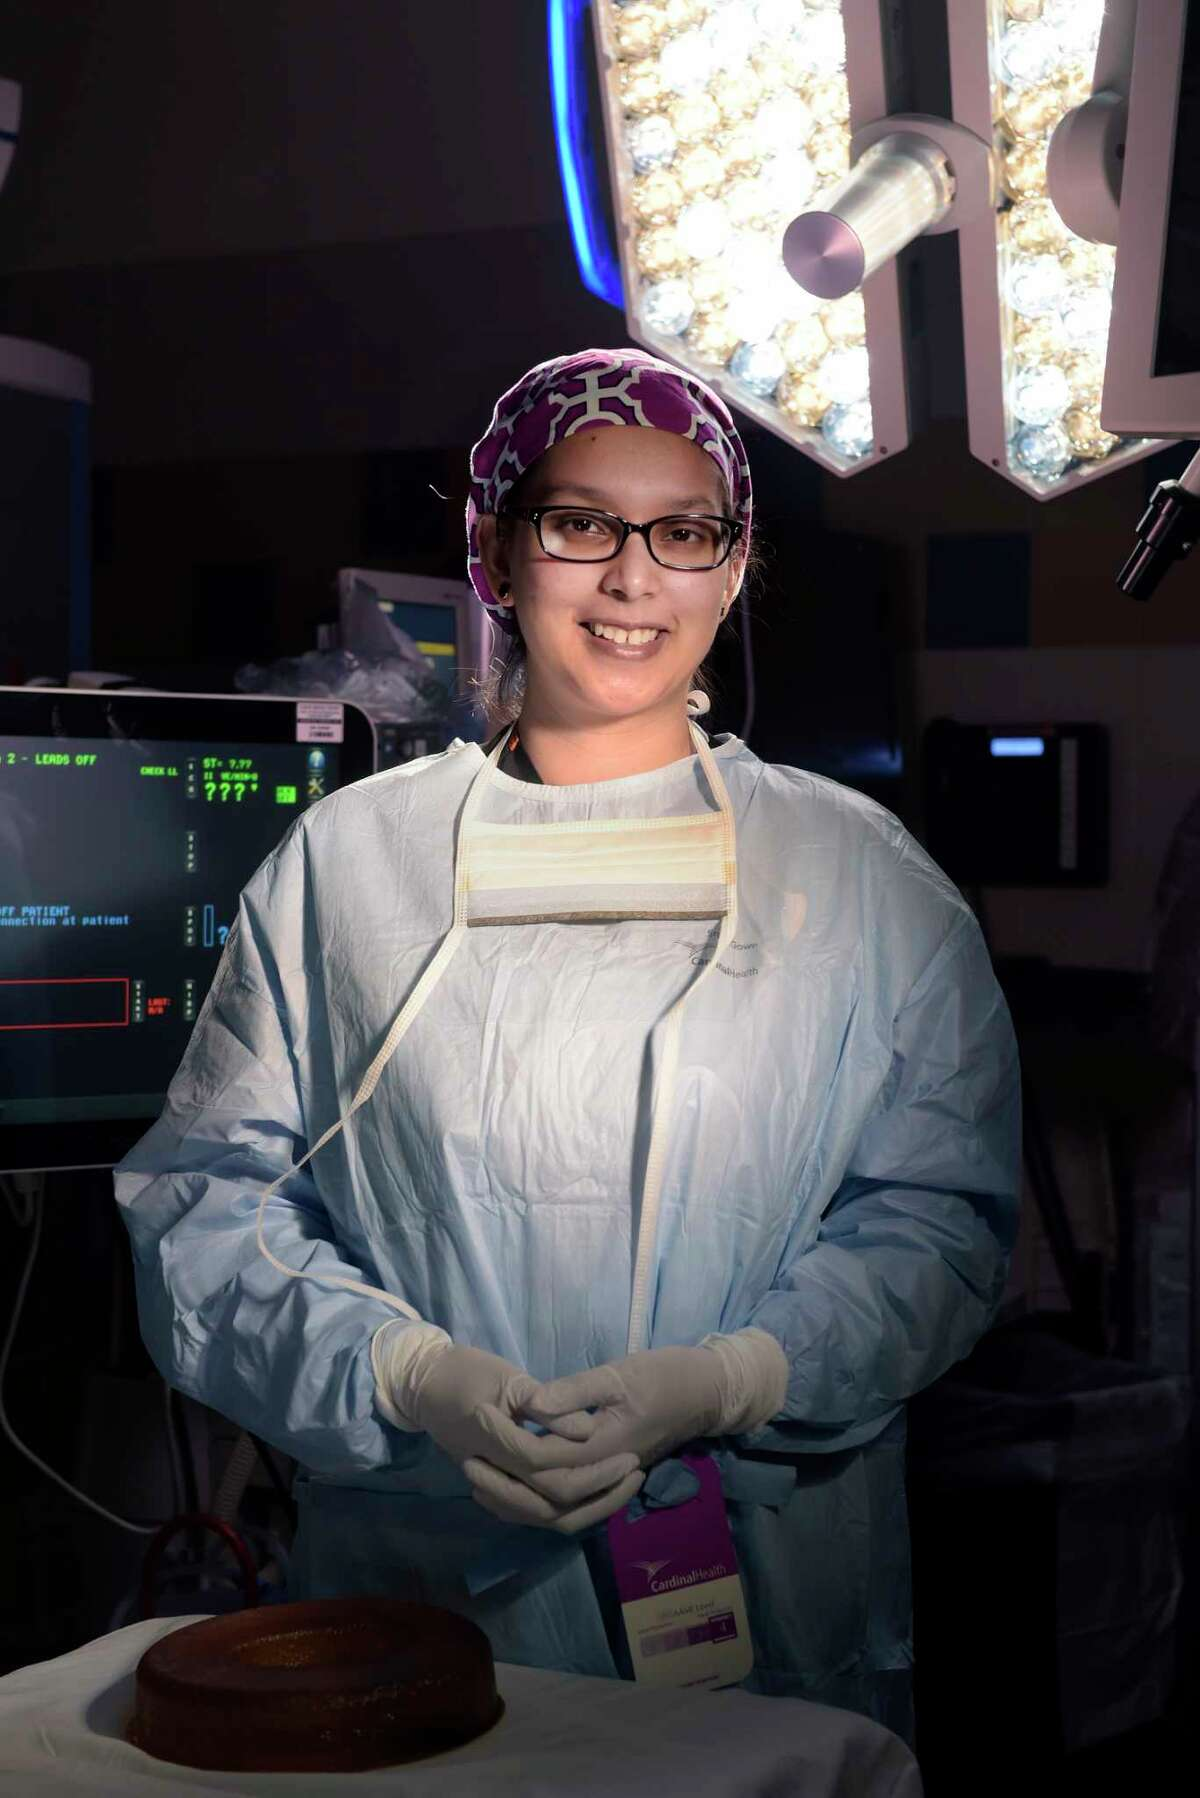 Doctor Jessica Zaman, a bariatric surgeon at Albany Medical Center, poses in an operating room at the hospital on Thursday, April 26, 2018, in Albany, N.Y. (Paul Buckowski/Times Union)